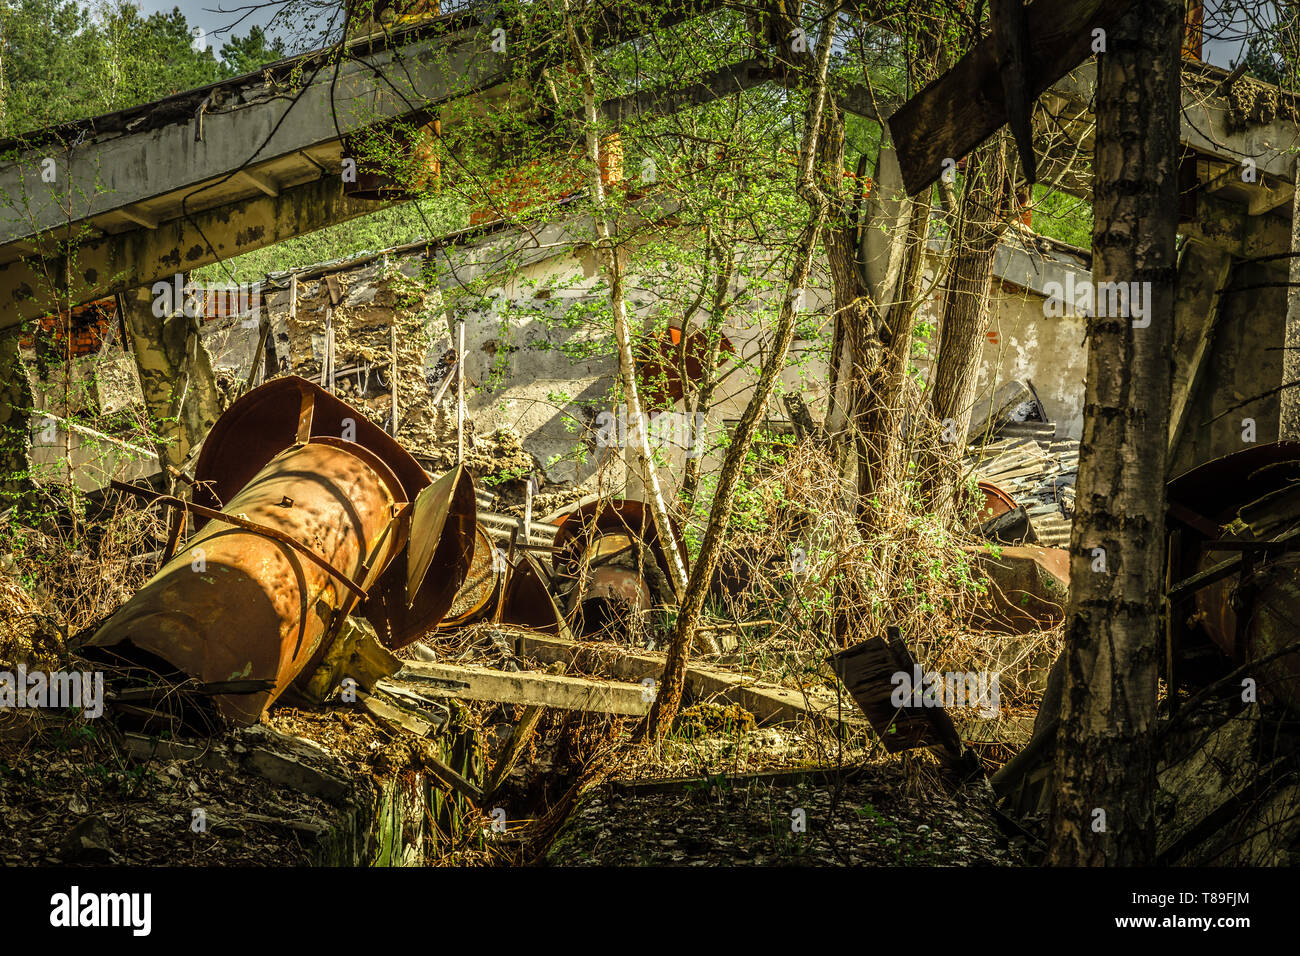 Abandoned farm overgrown with trees in Belarus Chernobyl exclusion zone, recently opened for teh public from april 2019. - Stock Image